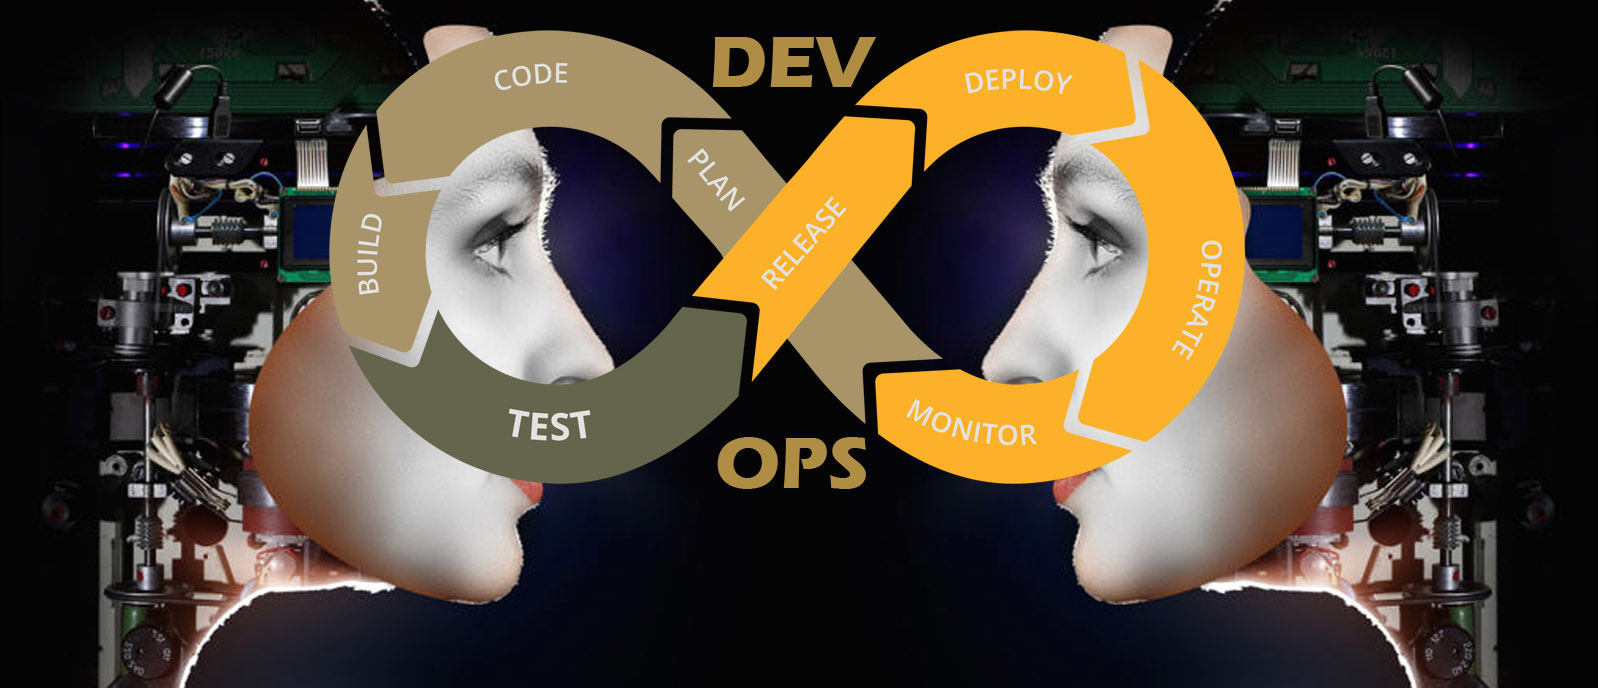 Proven Agile DevOps Experts - Harrington Starr Technology Consulting